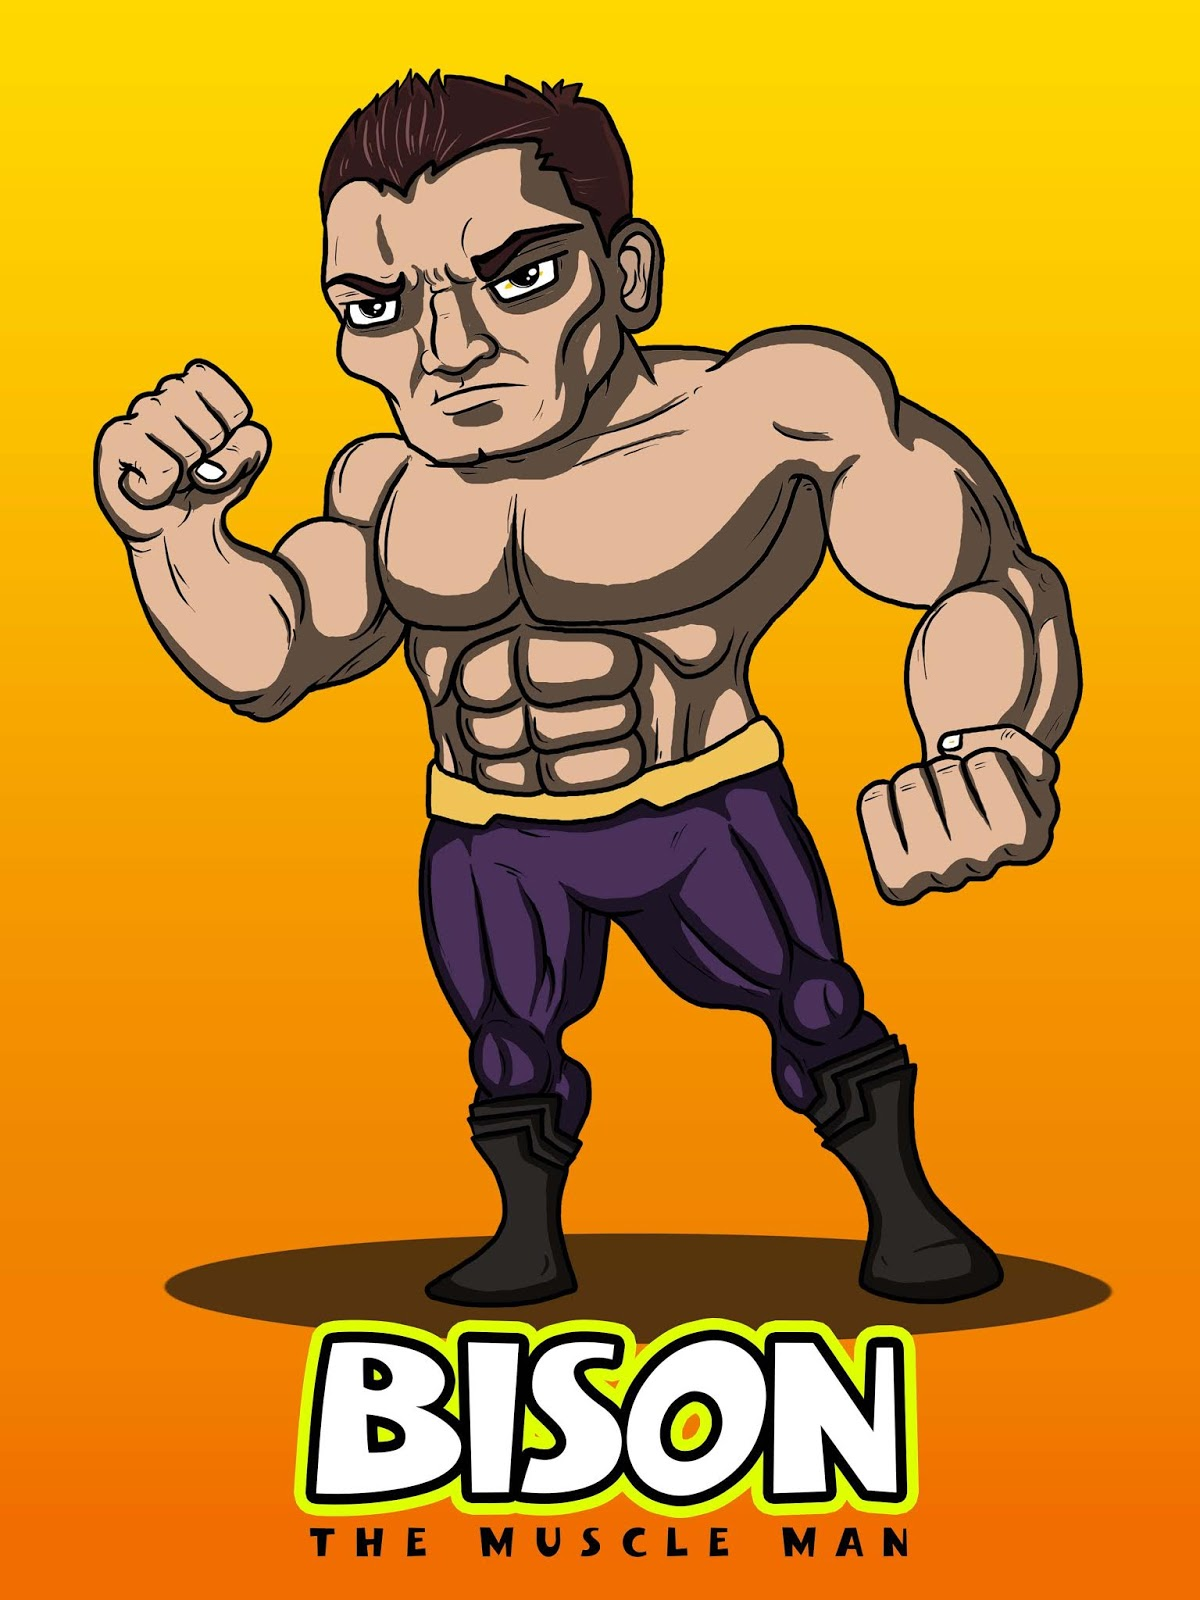 The Bison - Muscle Man